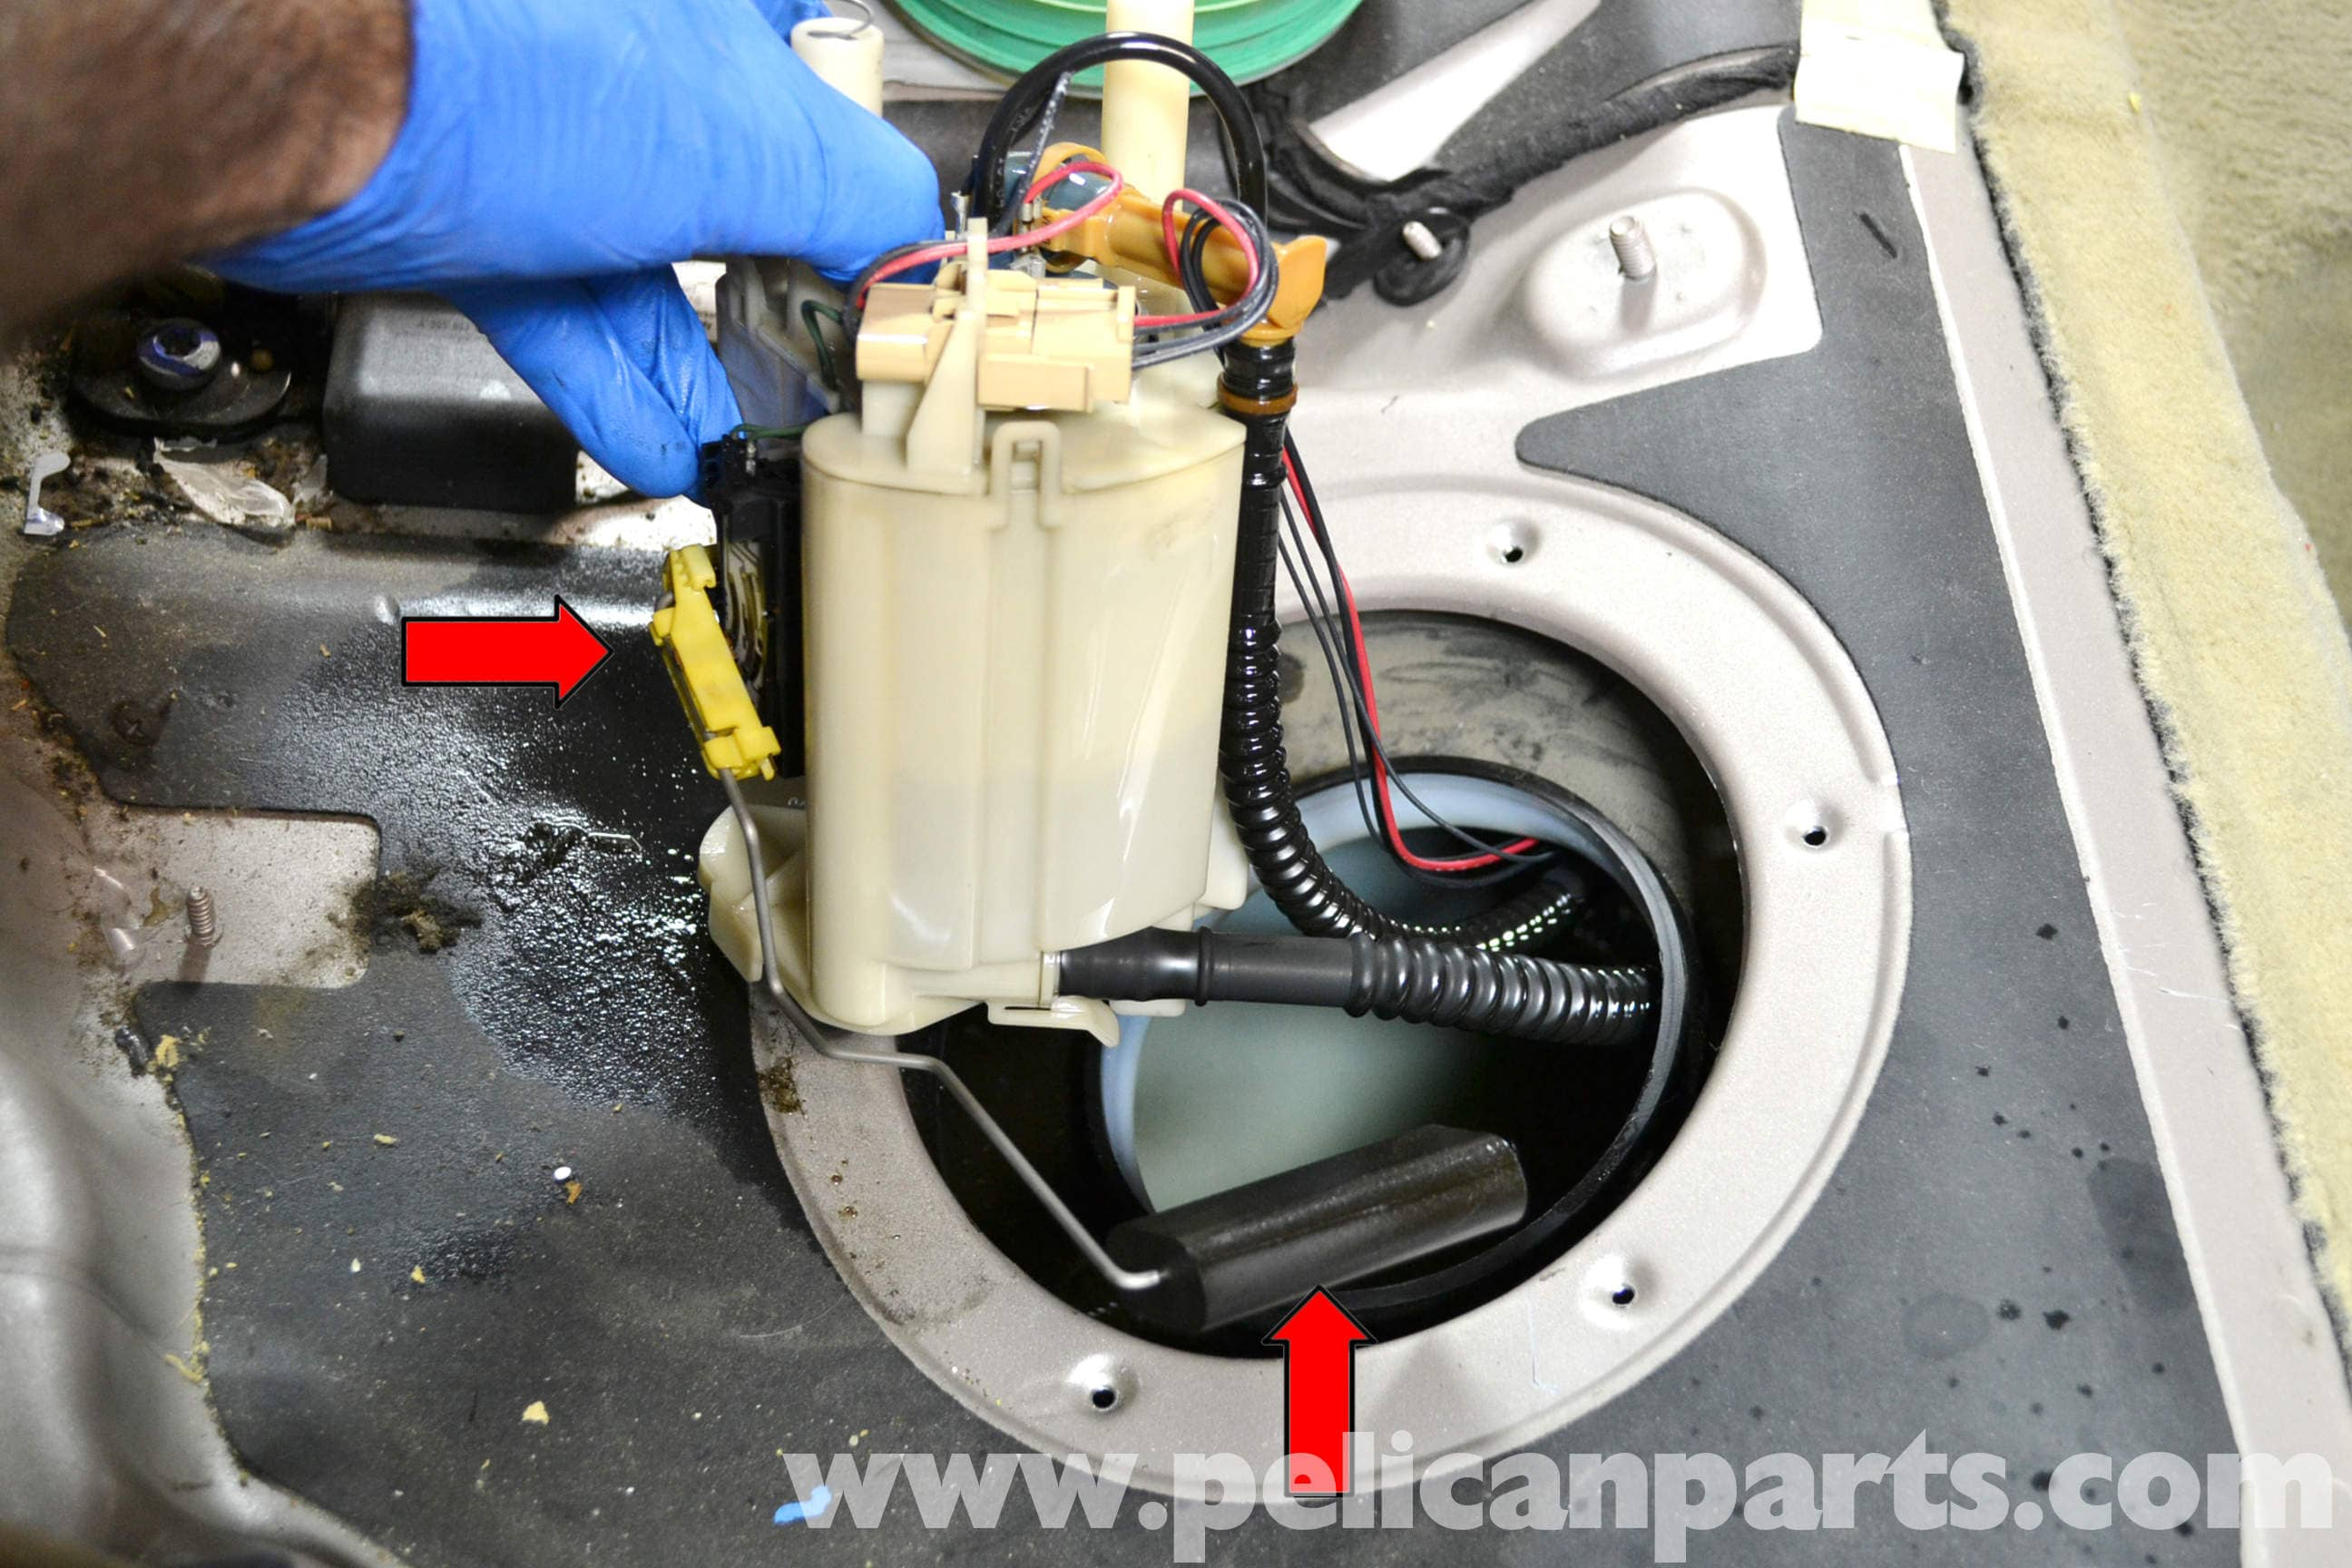 mercedes-benz w203 fuel pump replacement